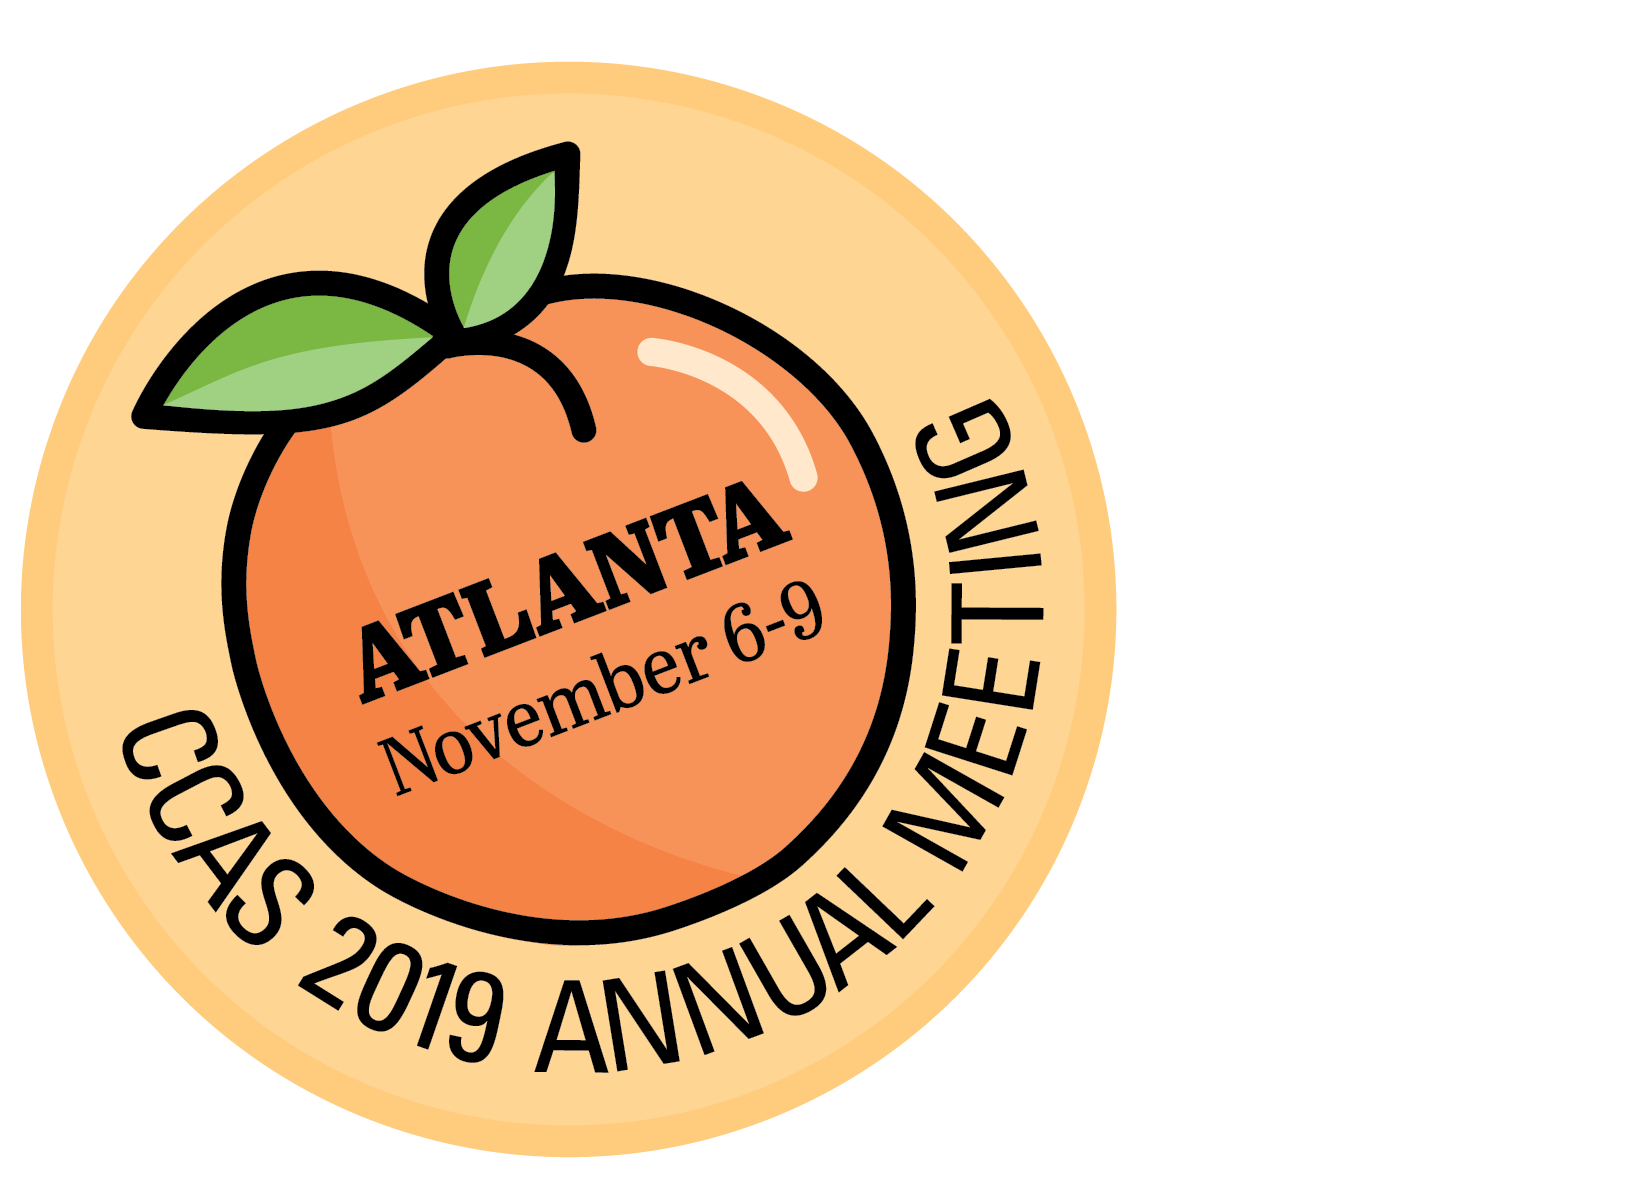 CCAS 2019 Annual Meeting - Council of Colleges of Arts and